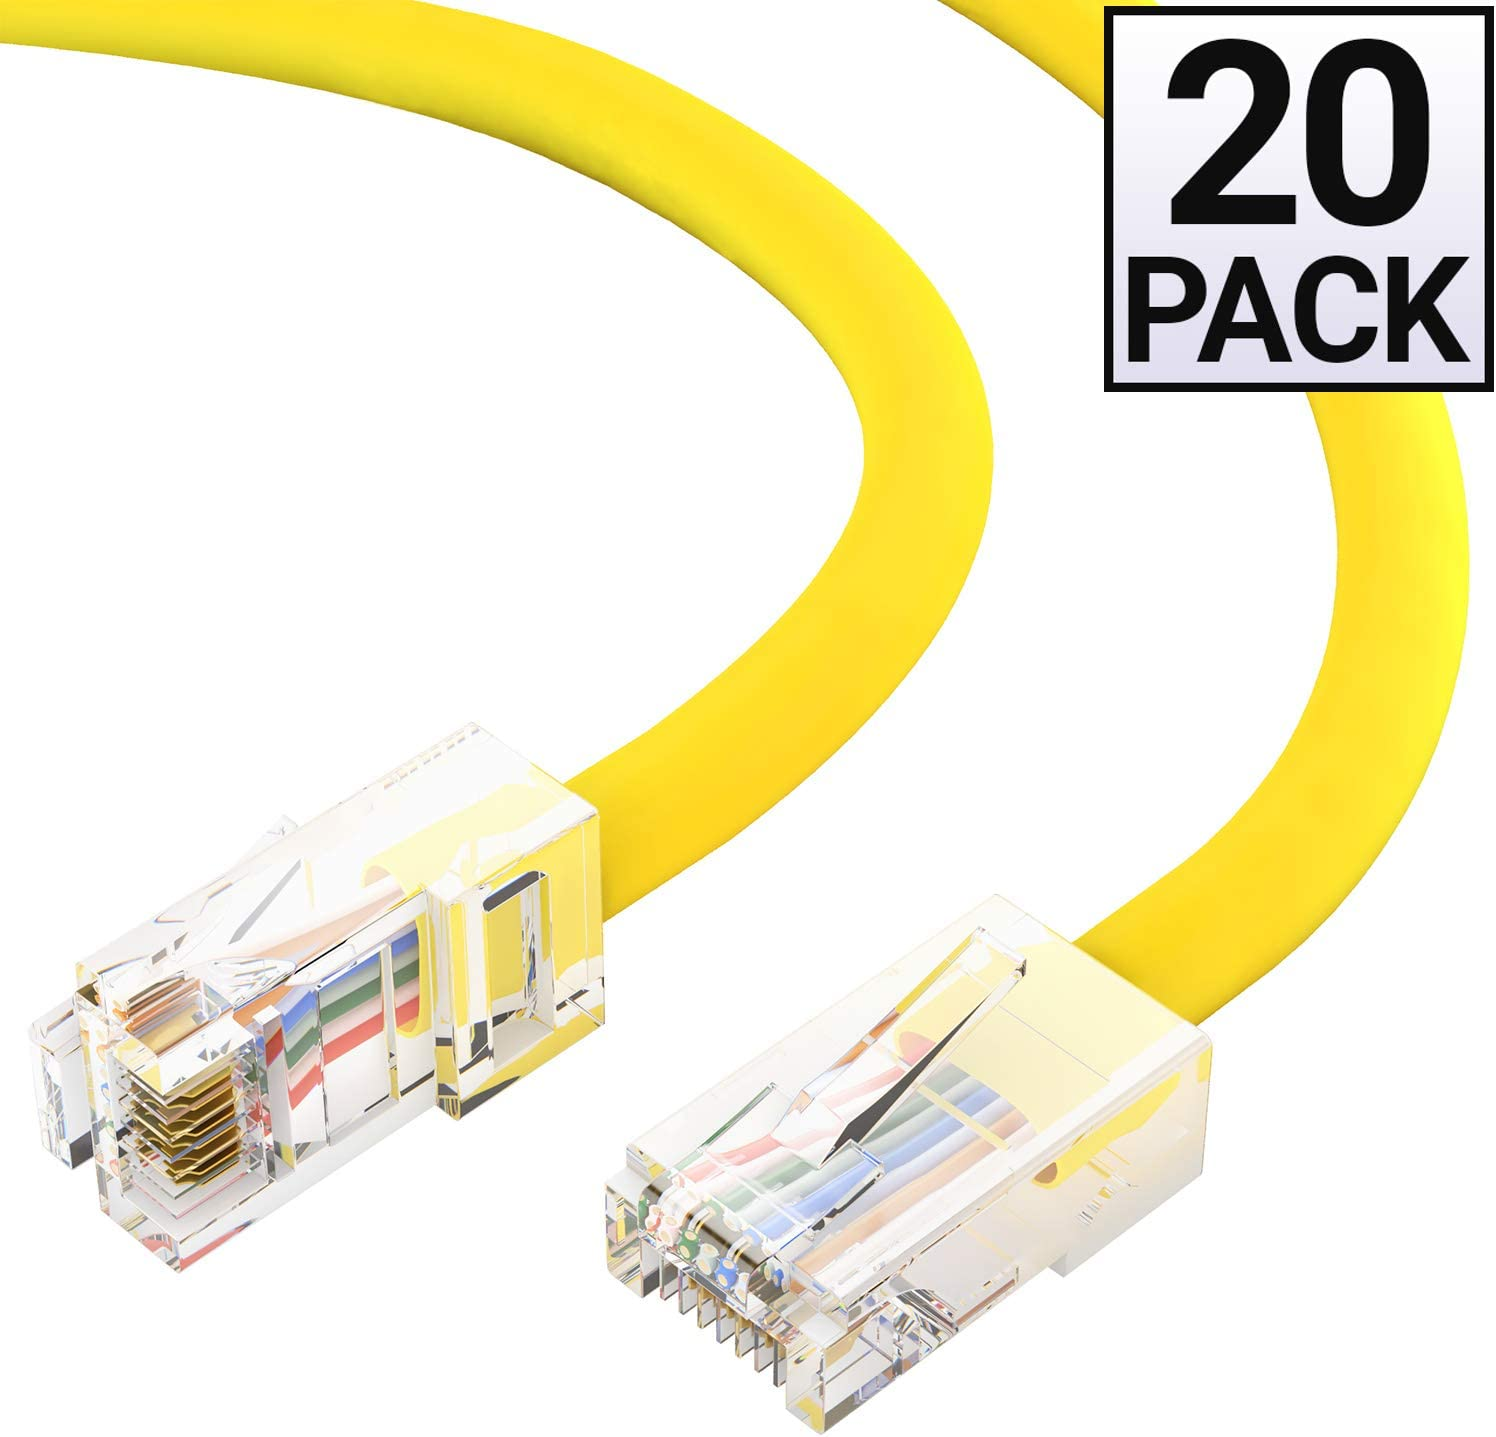 Available in 28 Lengths and 10 Colors Cat5e Ethernet Cable 1 Feet - Black RJ45 10Gbps High Speed LAN Internet Patch Cord Computer Network Cable with Snagless Connector GOWOS 10-Pack UTP